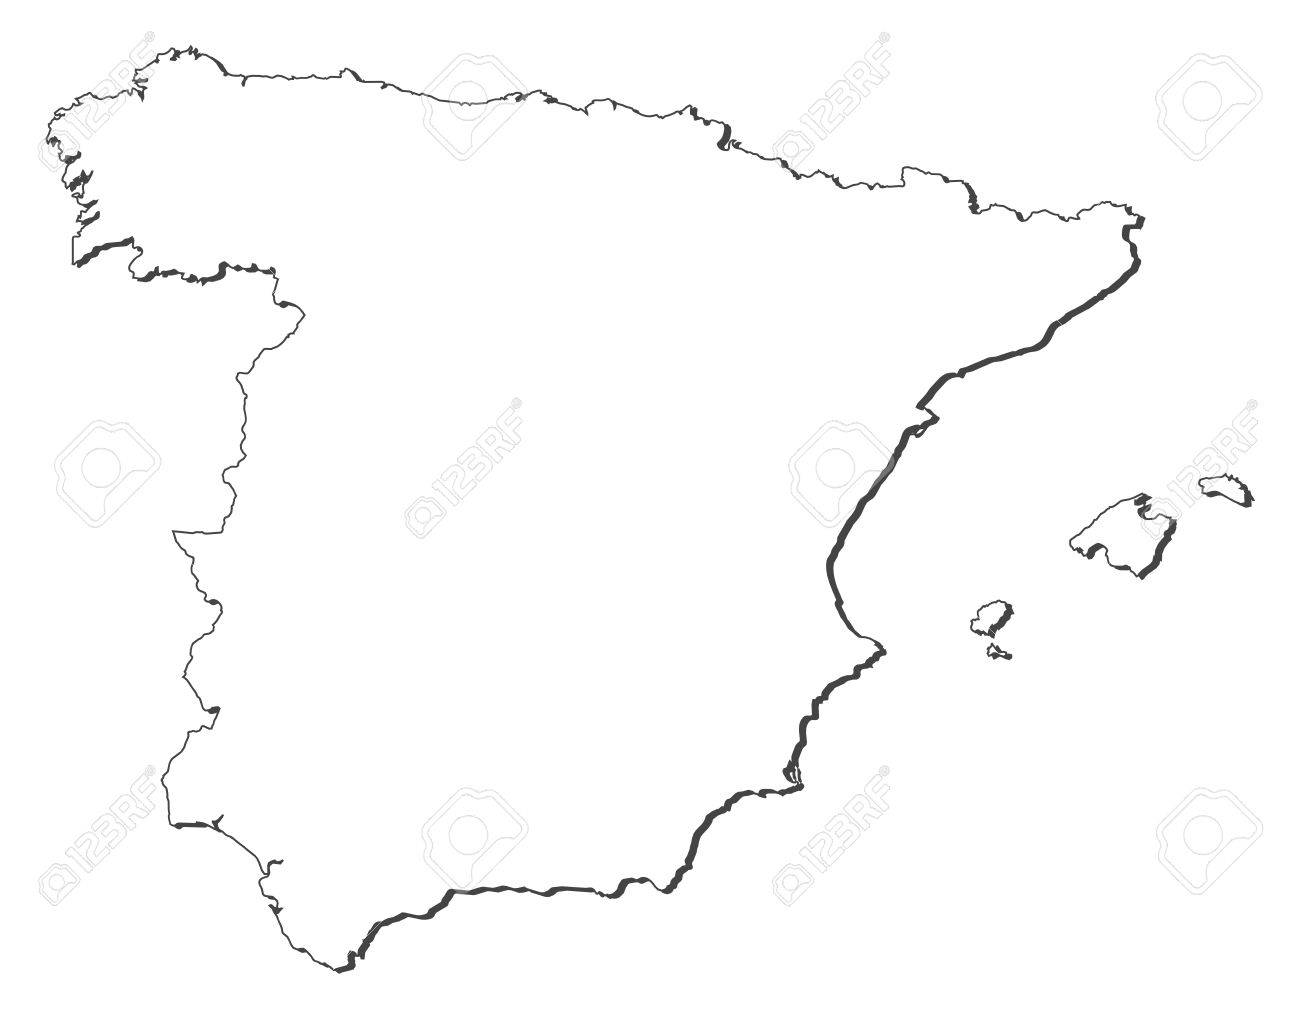 Map Of Spain Drawing.Political Map Of Spain With The Several Regions